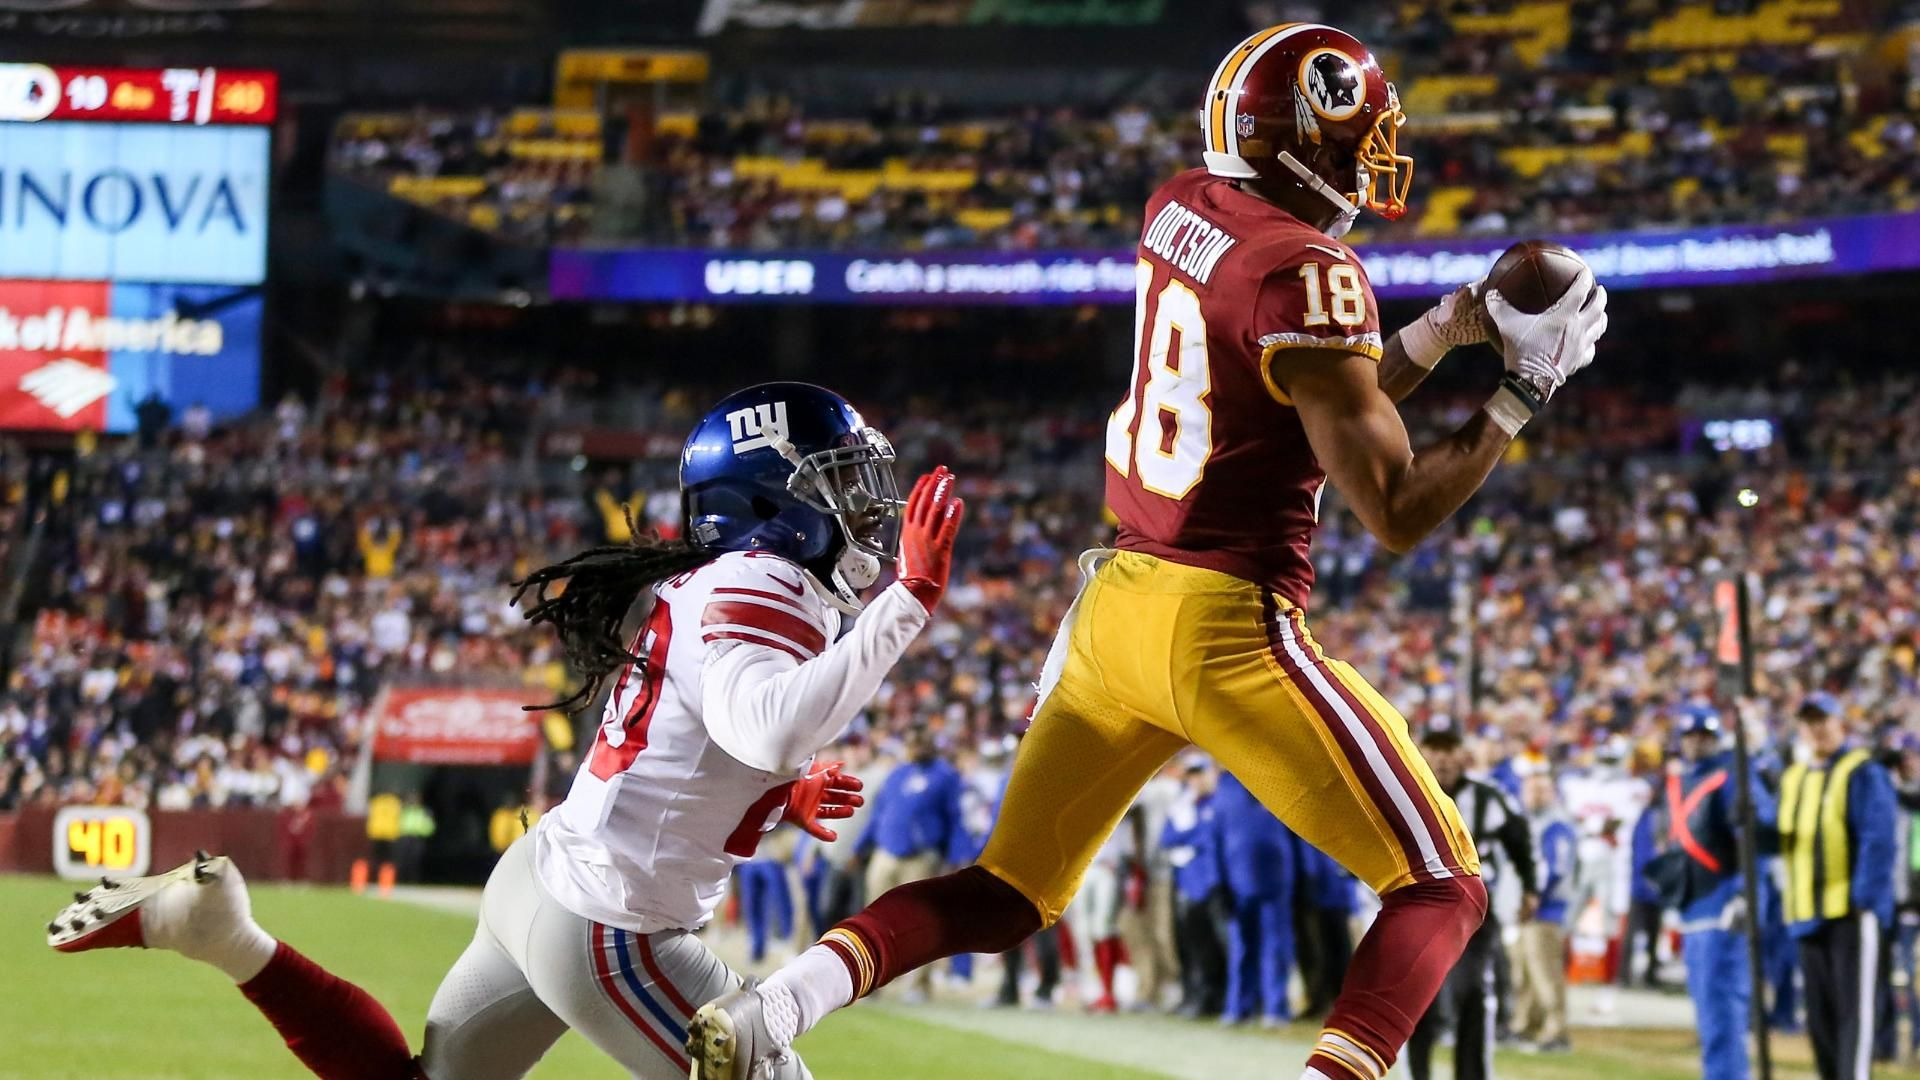 Doctson makes leaping catch for go-ahead TD